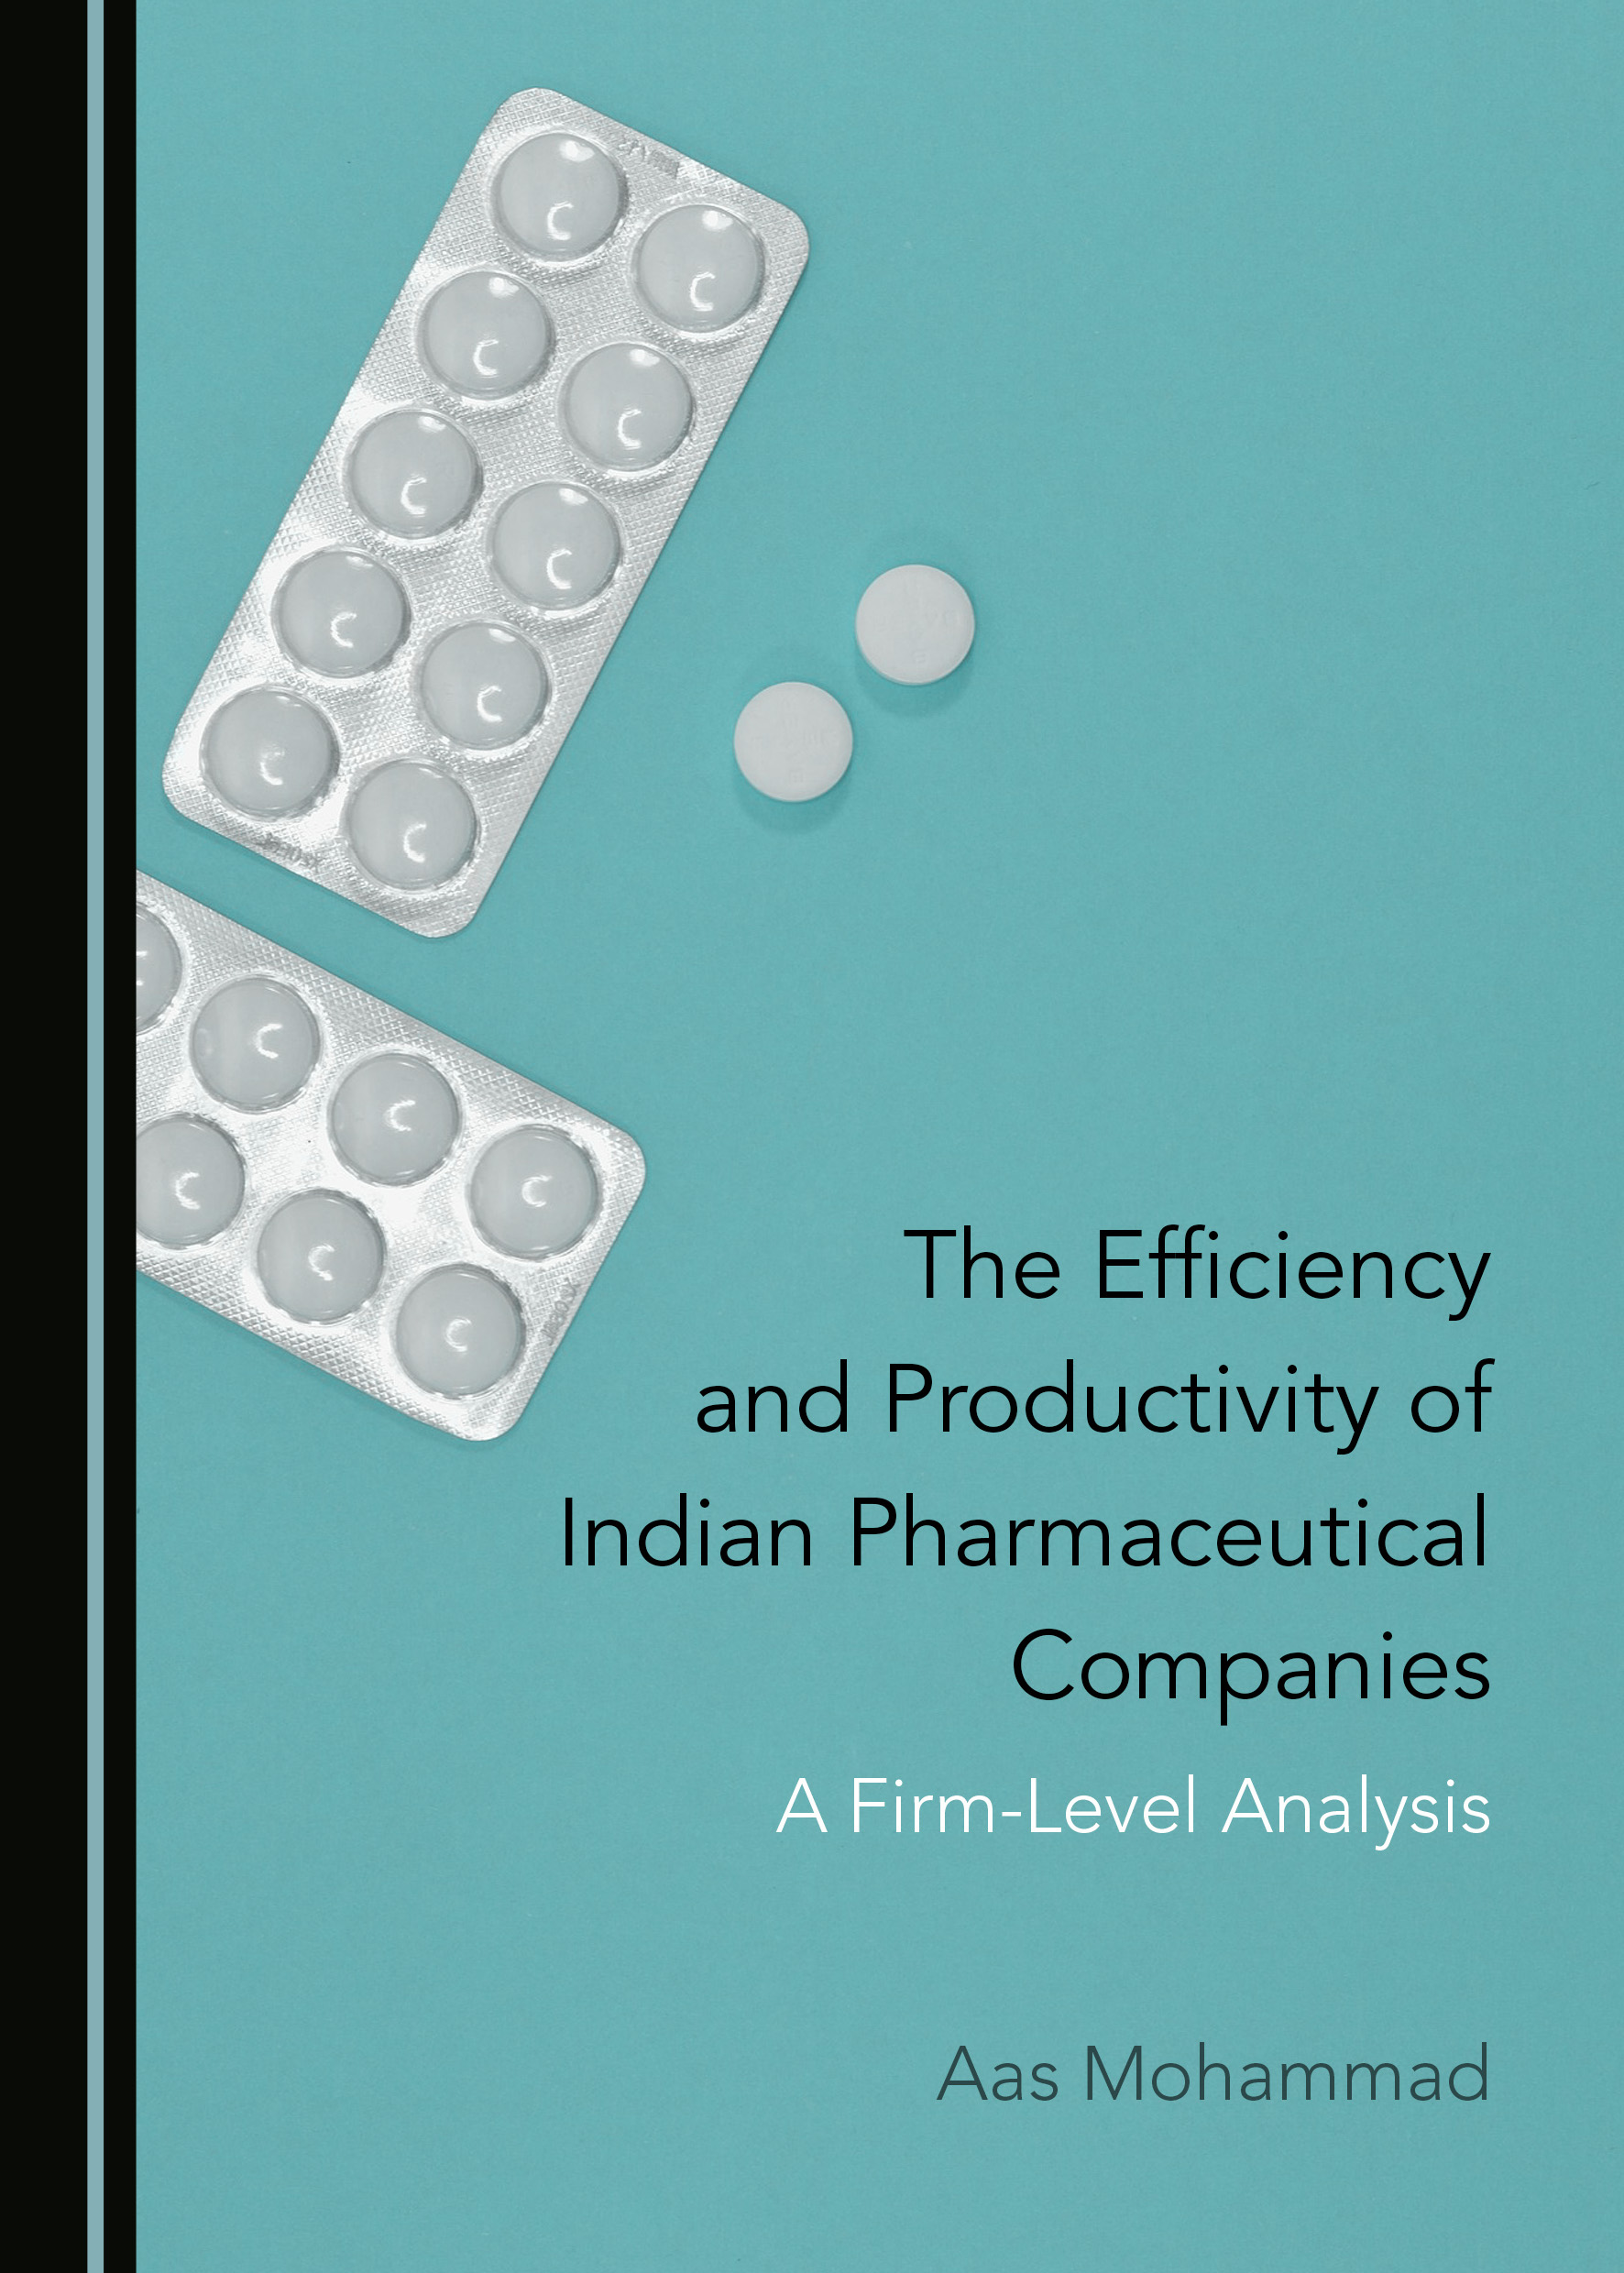 The Efficiency and Productivity of Indian Pharmaceutical Companies: A Firm-Level Analysis